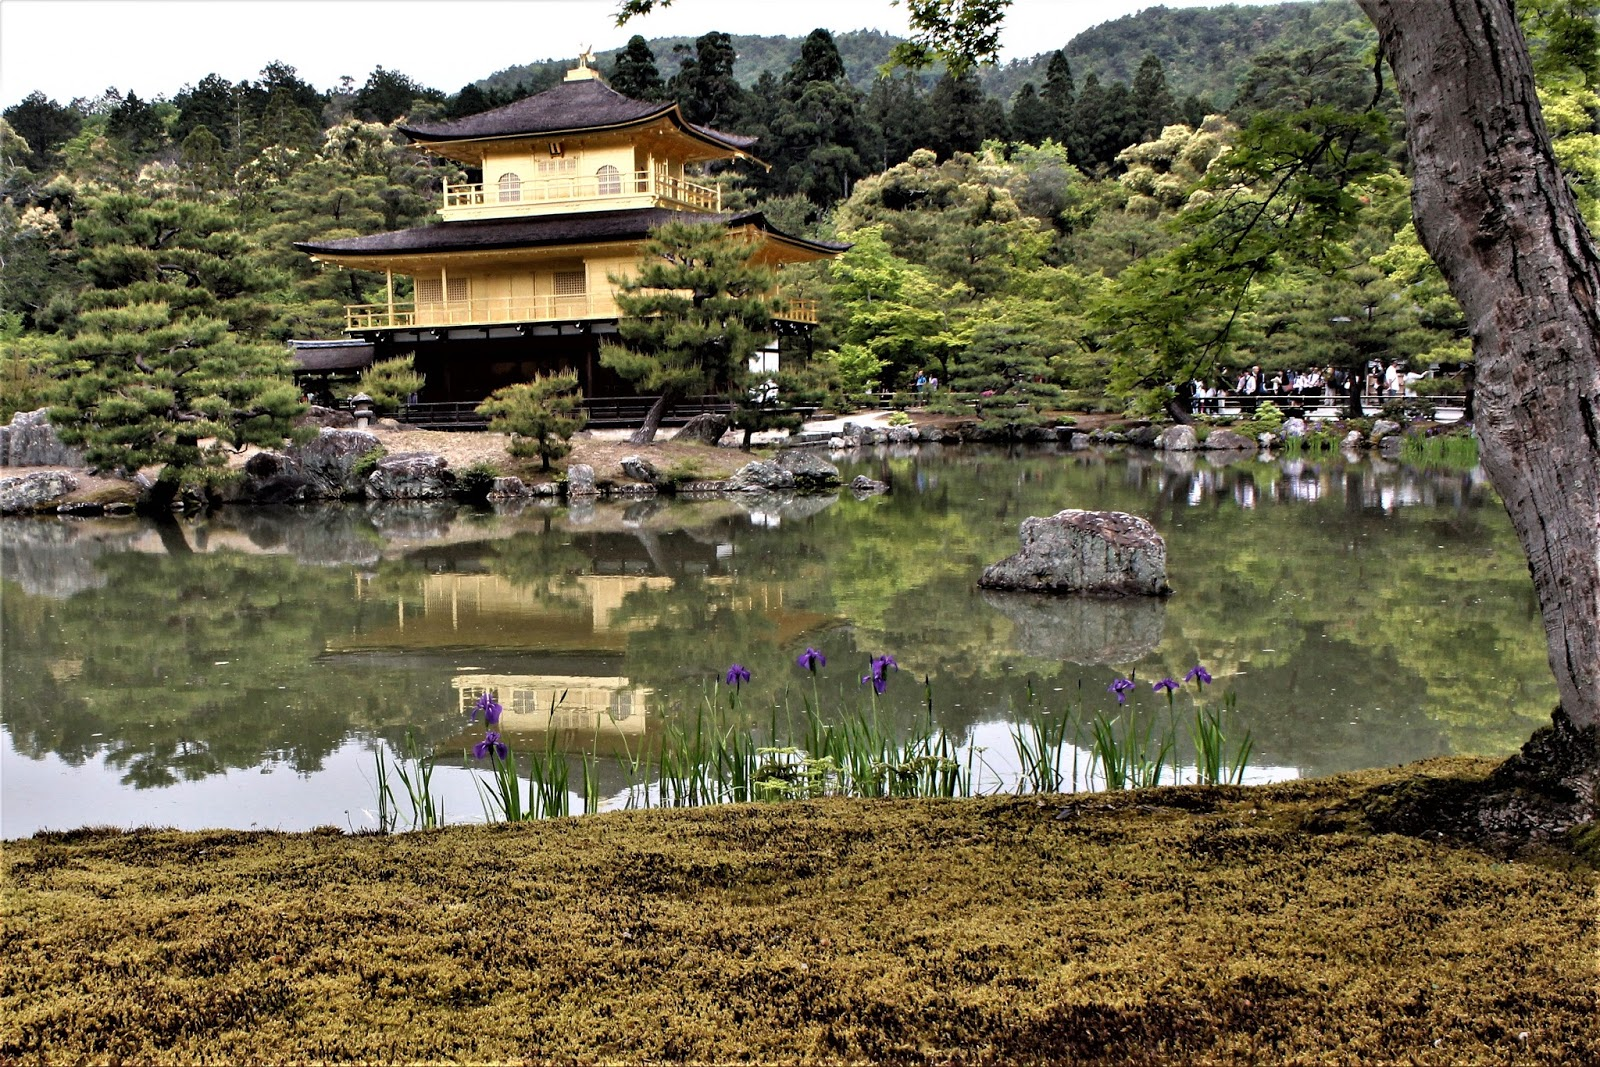 randomthoughts: Our trip to Japan